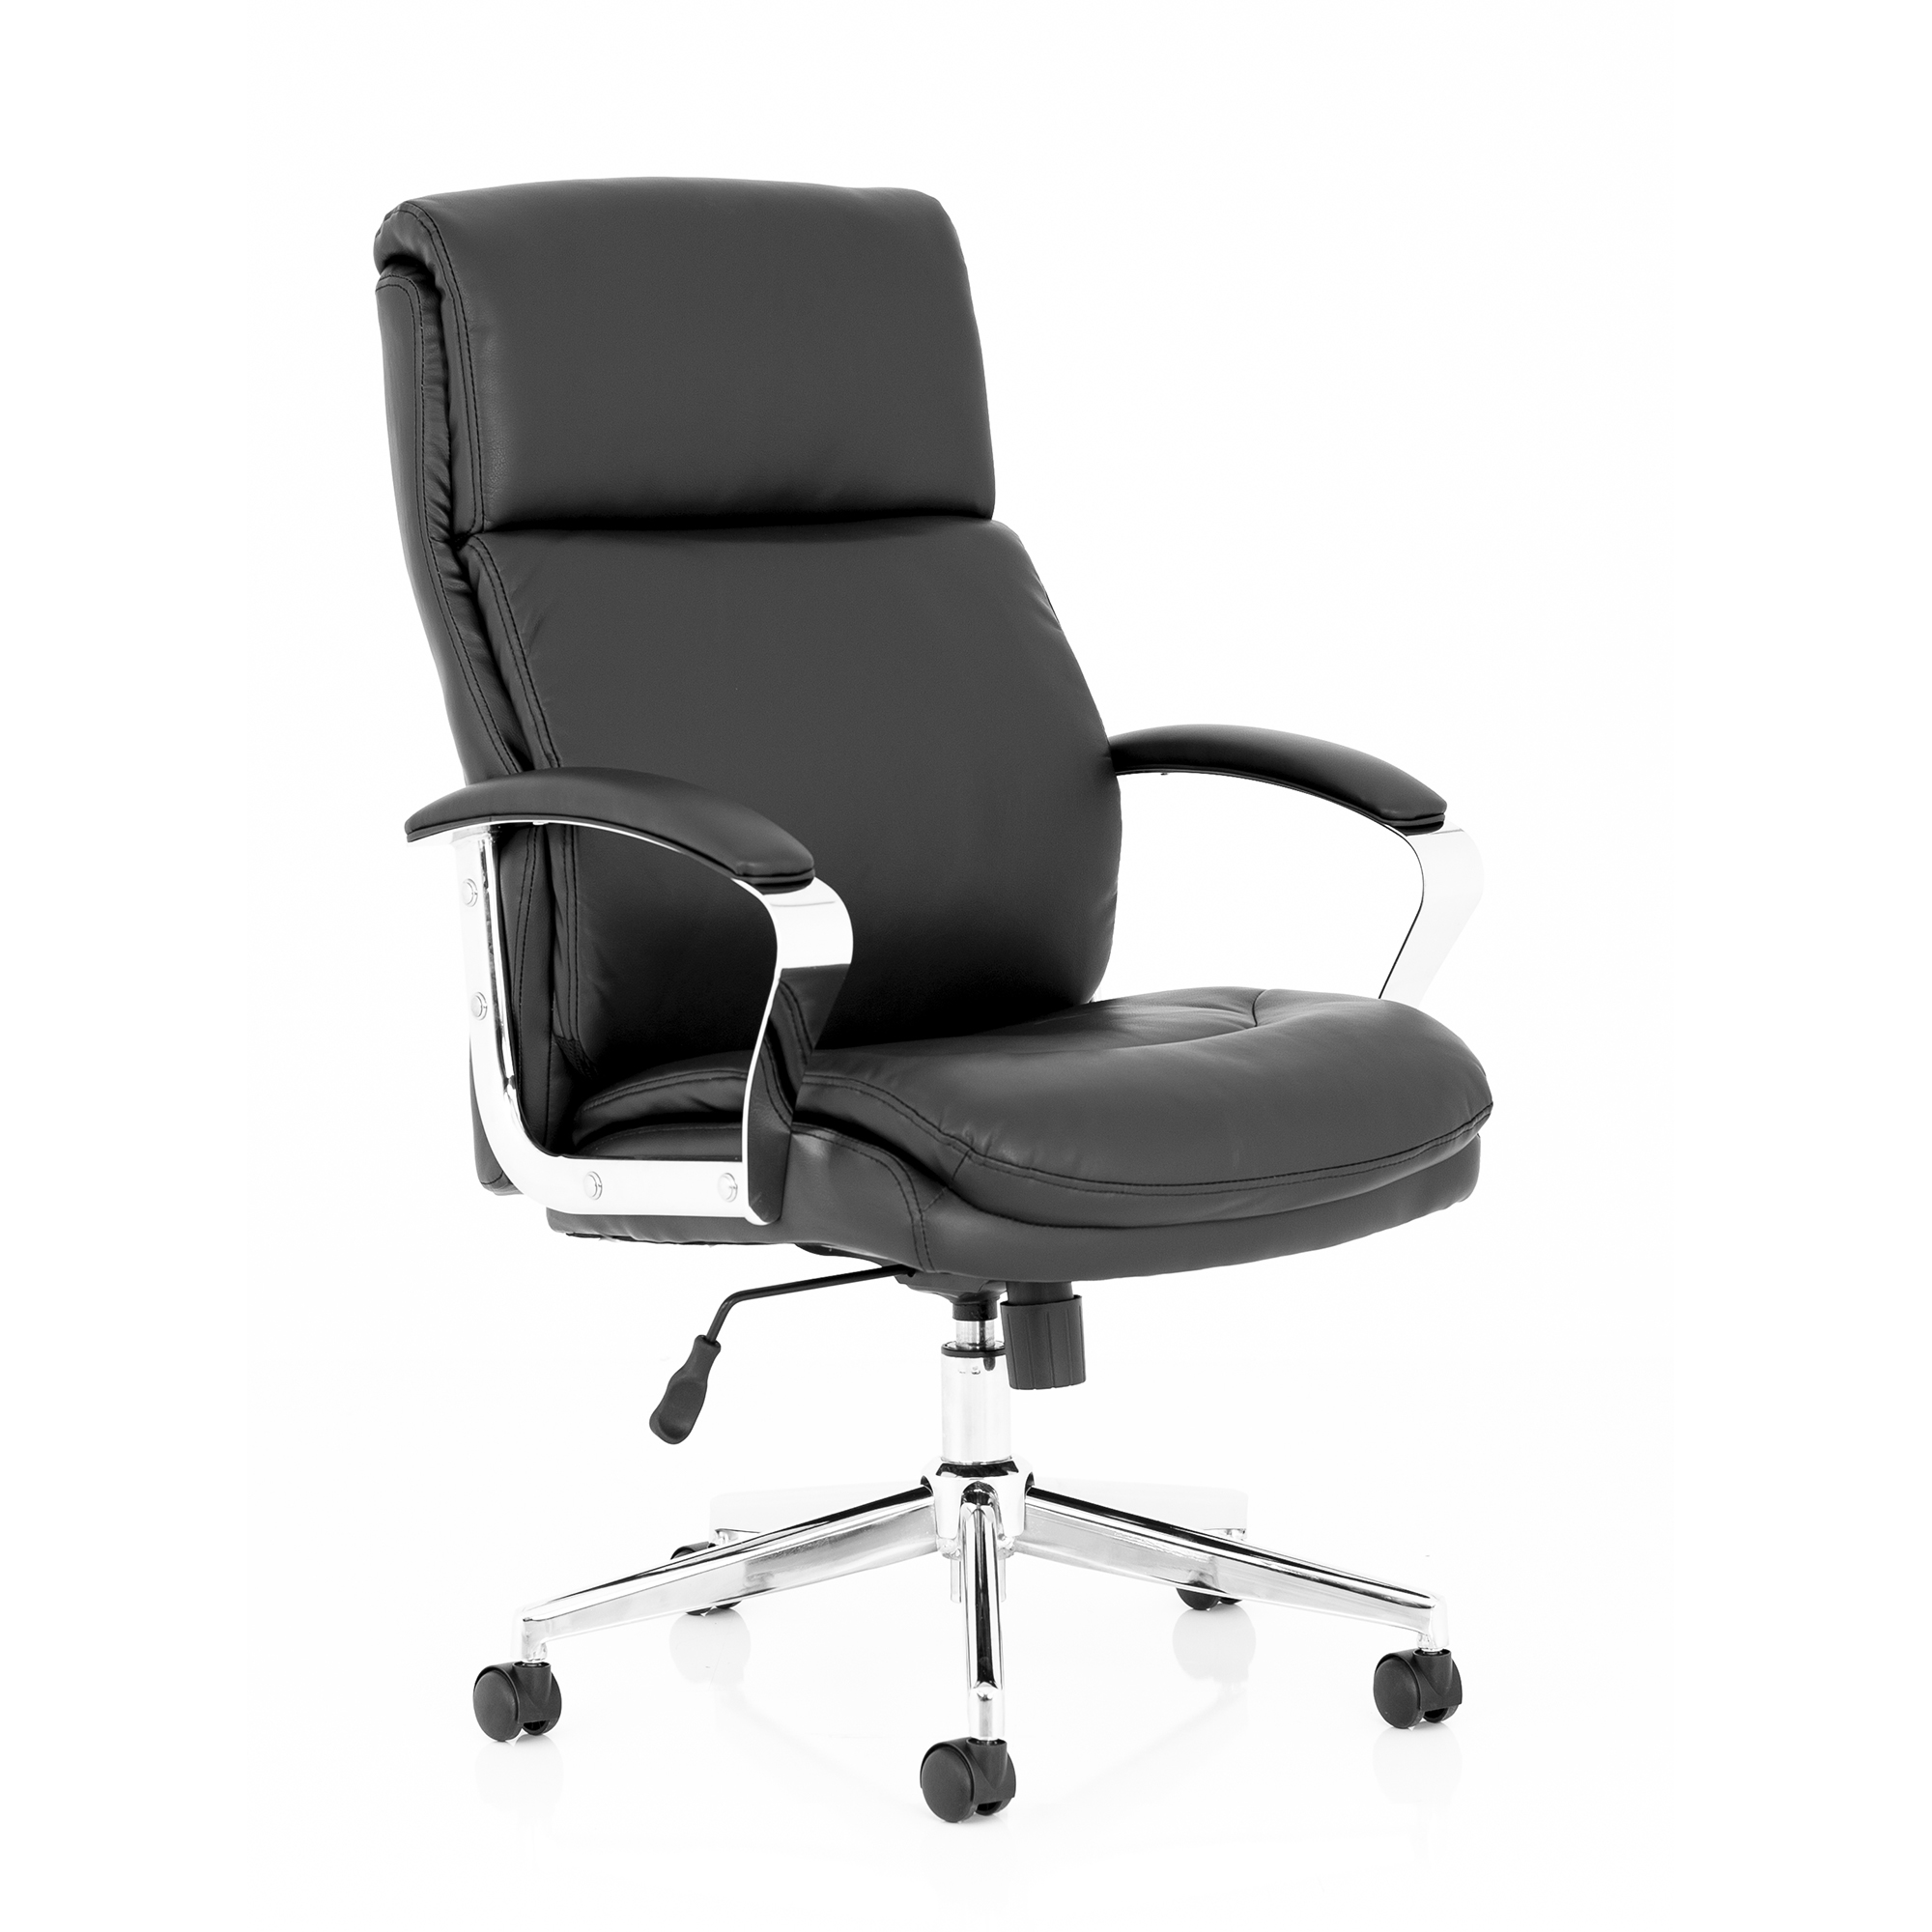 Executive seating Trexus Tunis Executive Chair Bonded Leather Black Ref EX000210